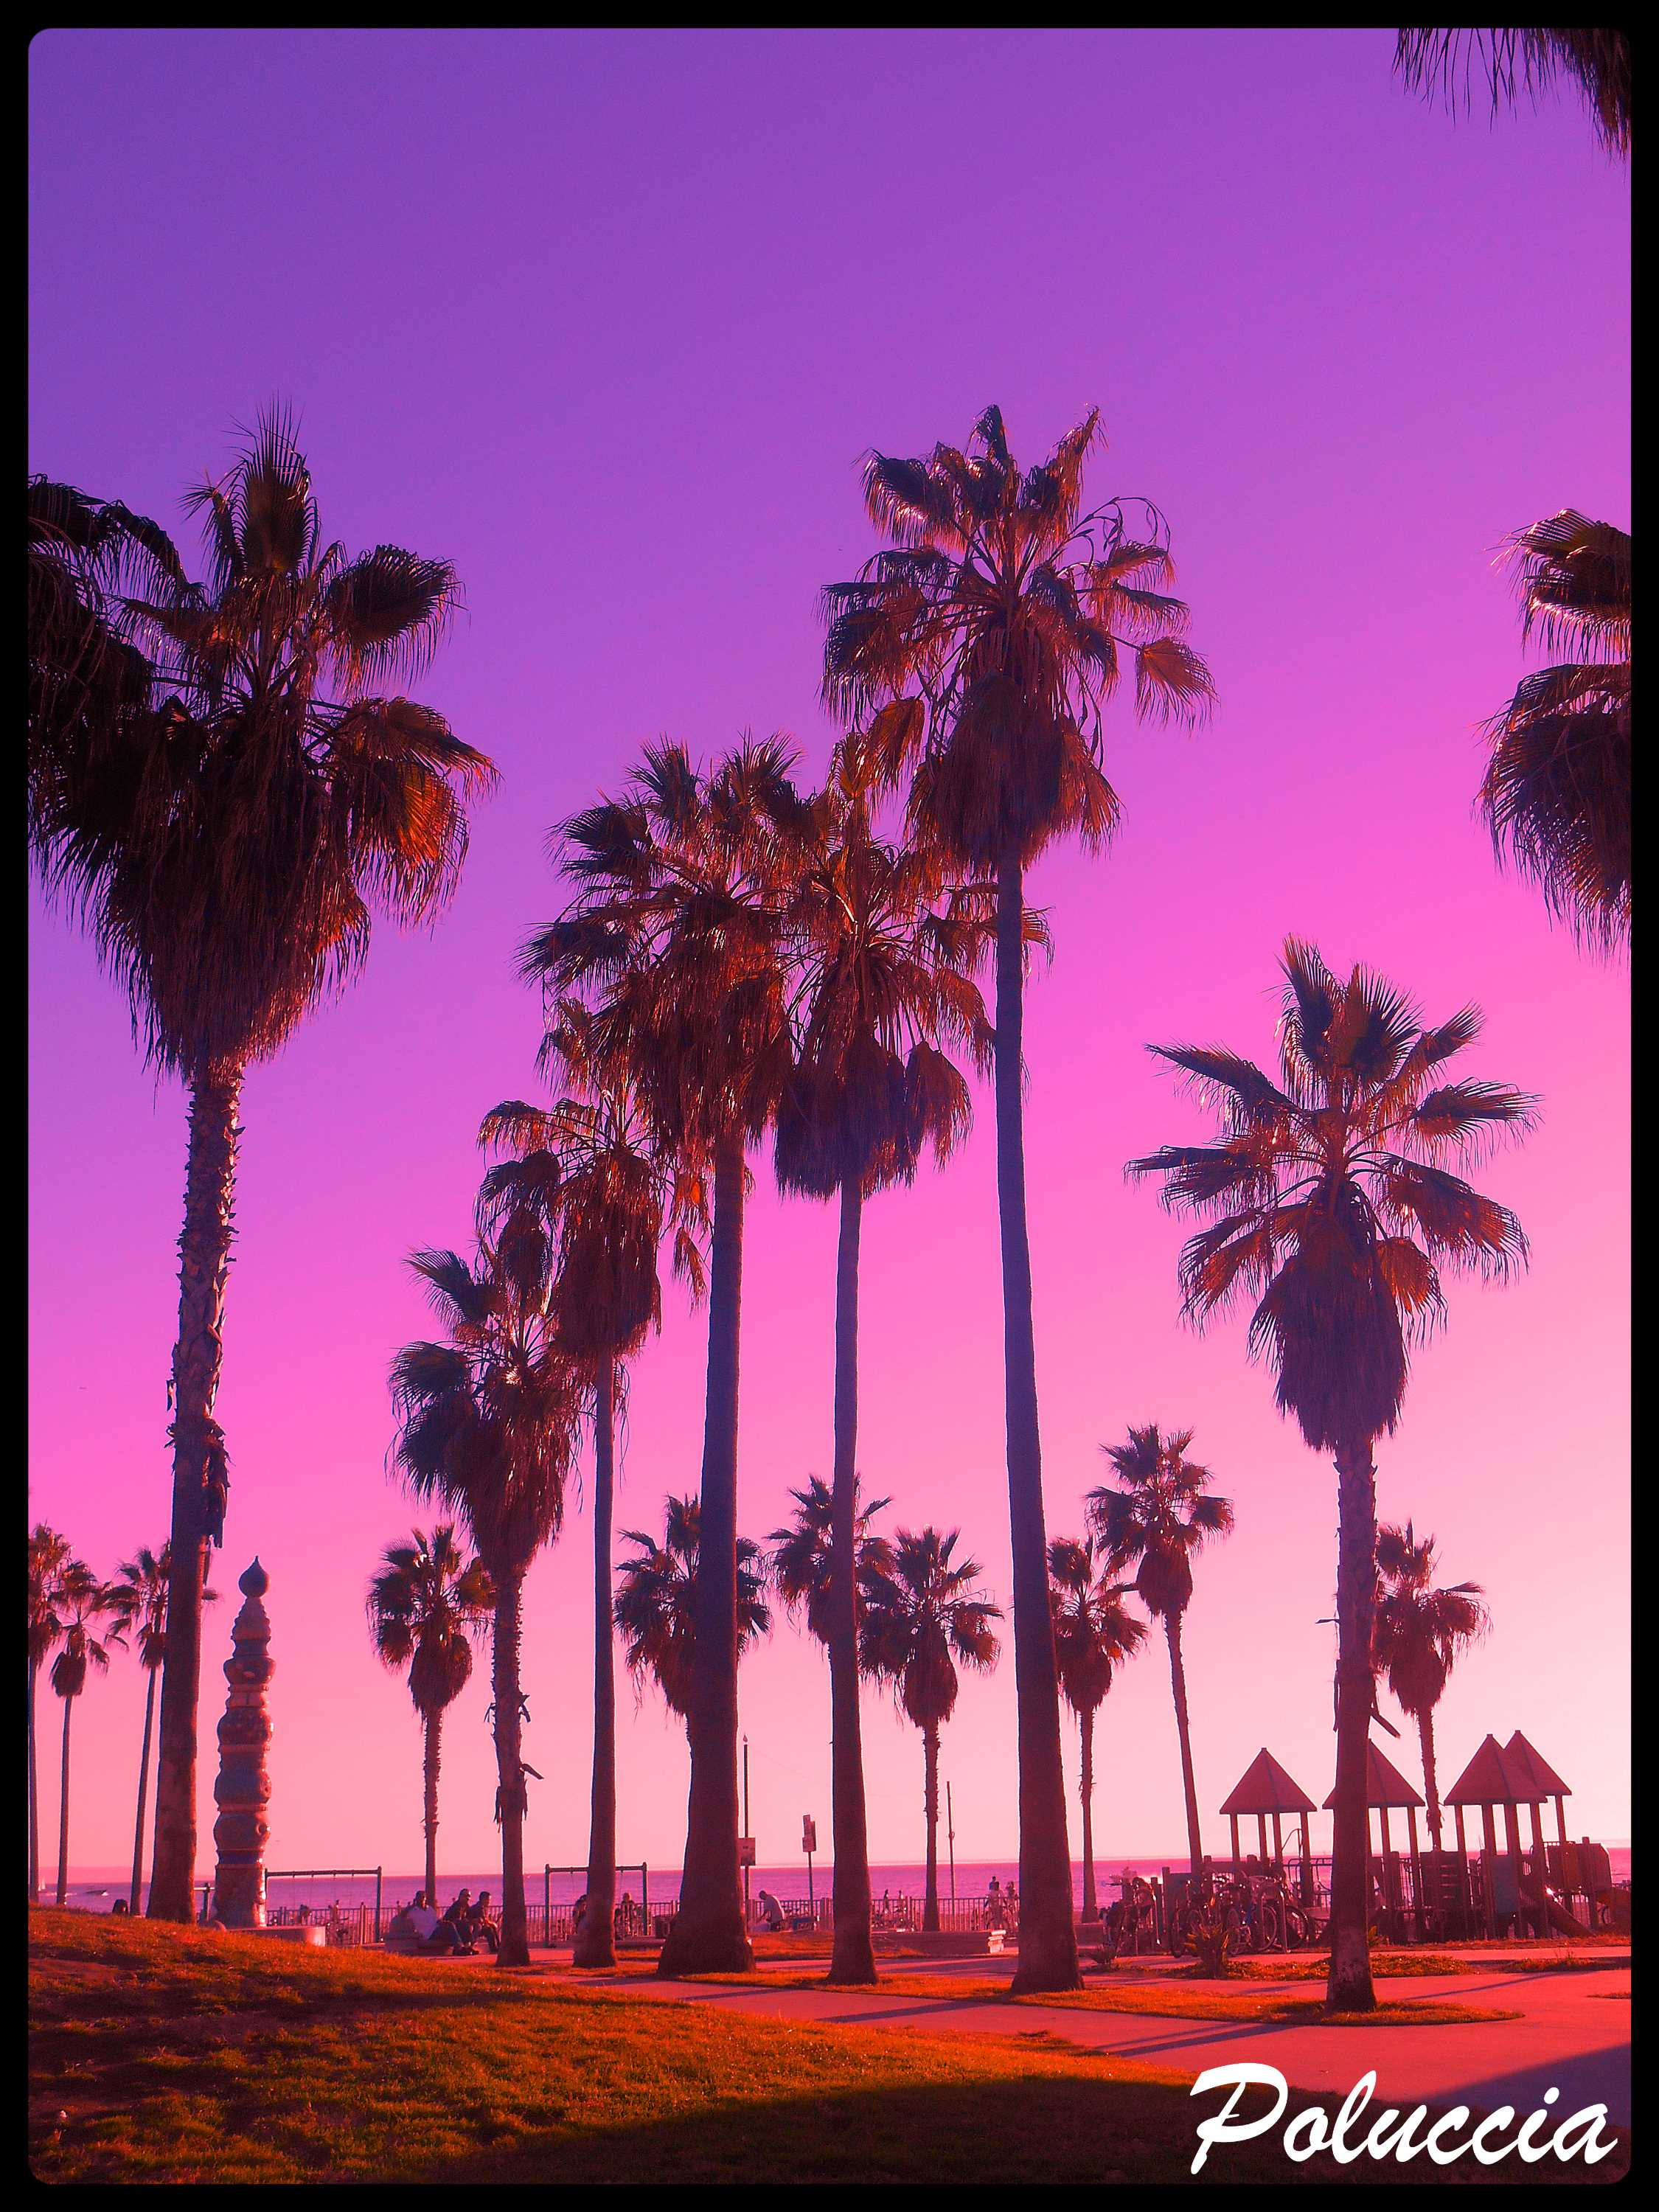 New Image VENICE BEACH K